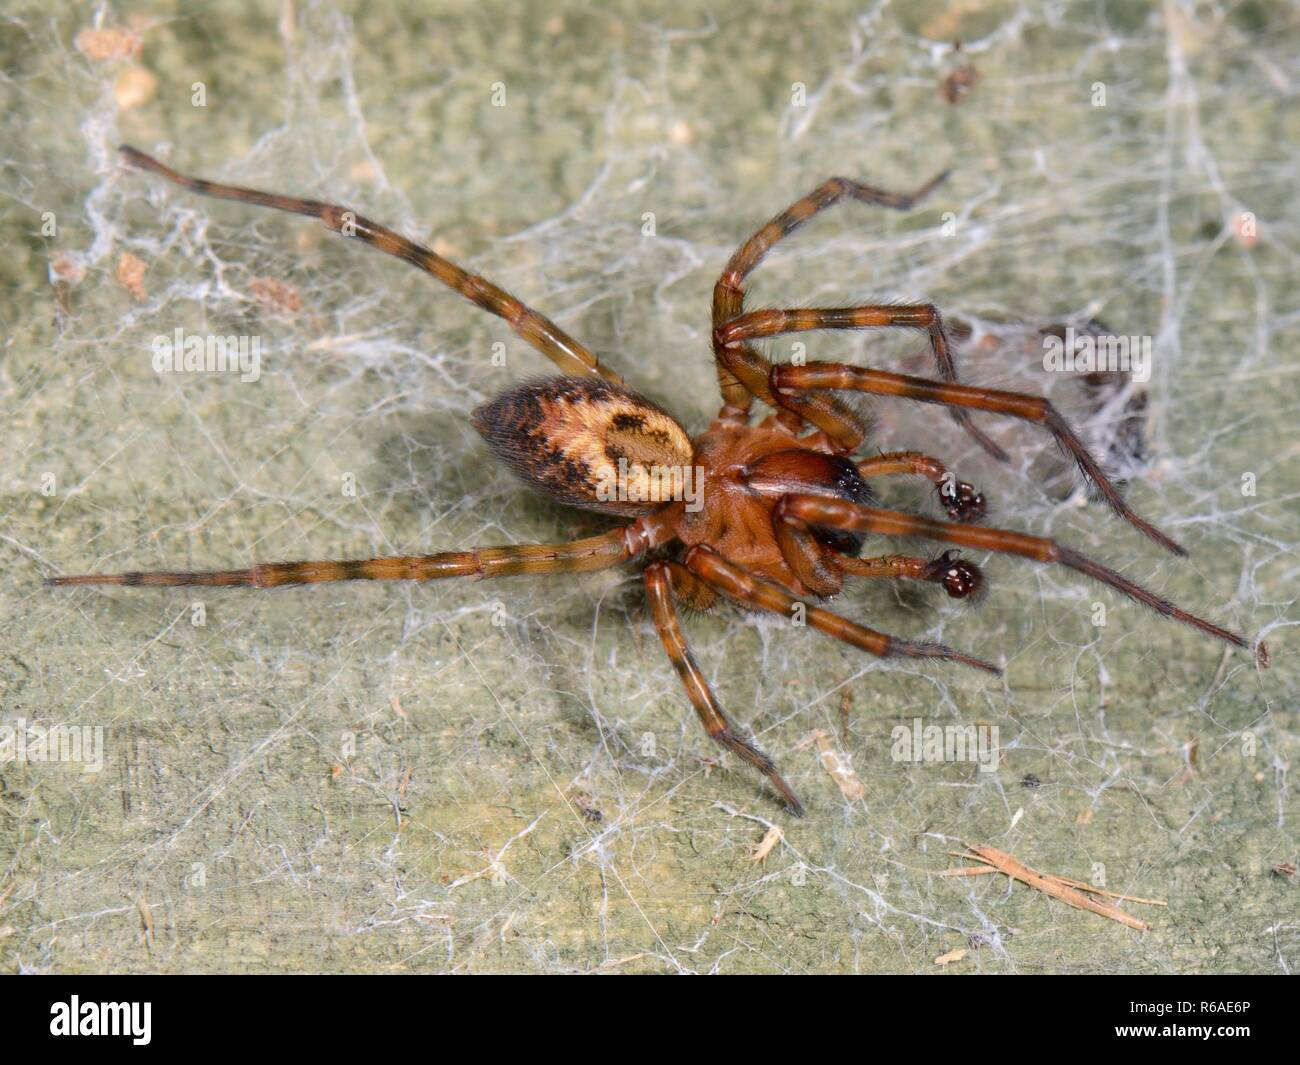 Common lace weaver / Lace-webbed spider (Amaurobia similis) male on  a female's web on a garden fence, vibrating it at intervals to court her. - Stock Image